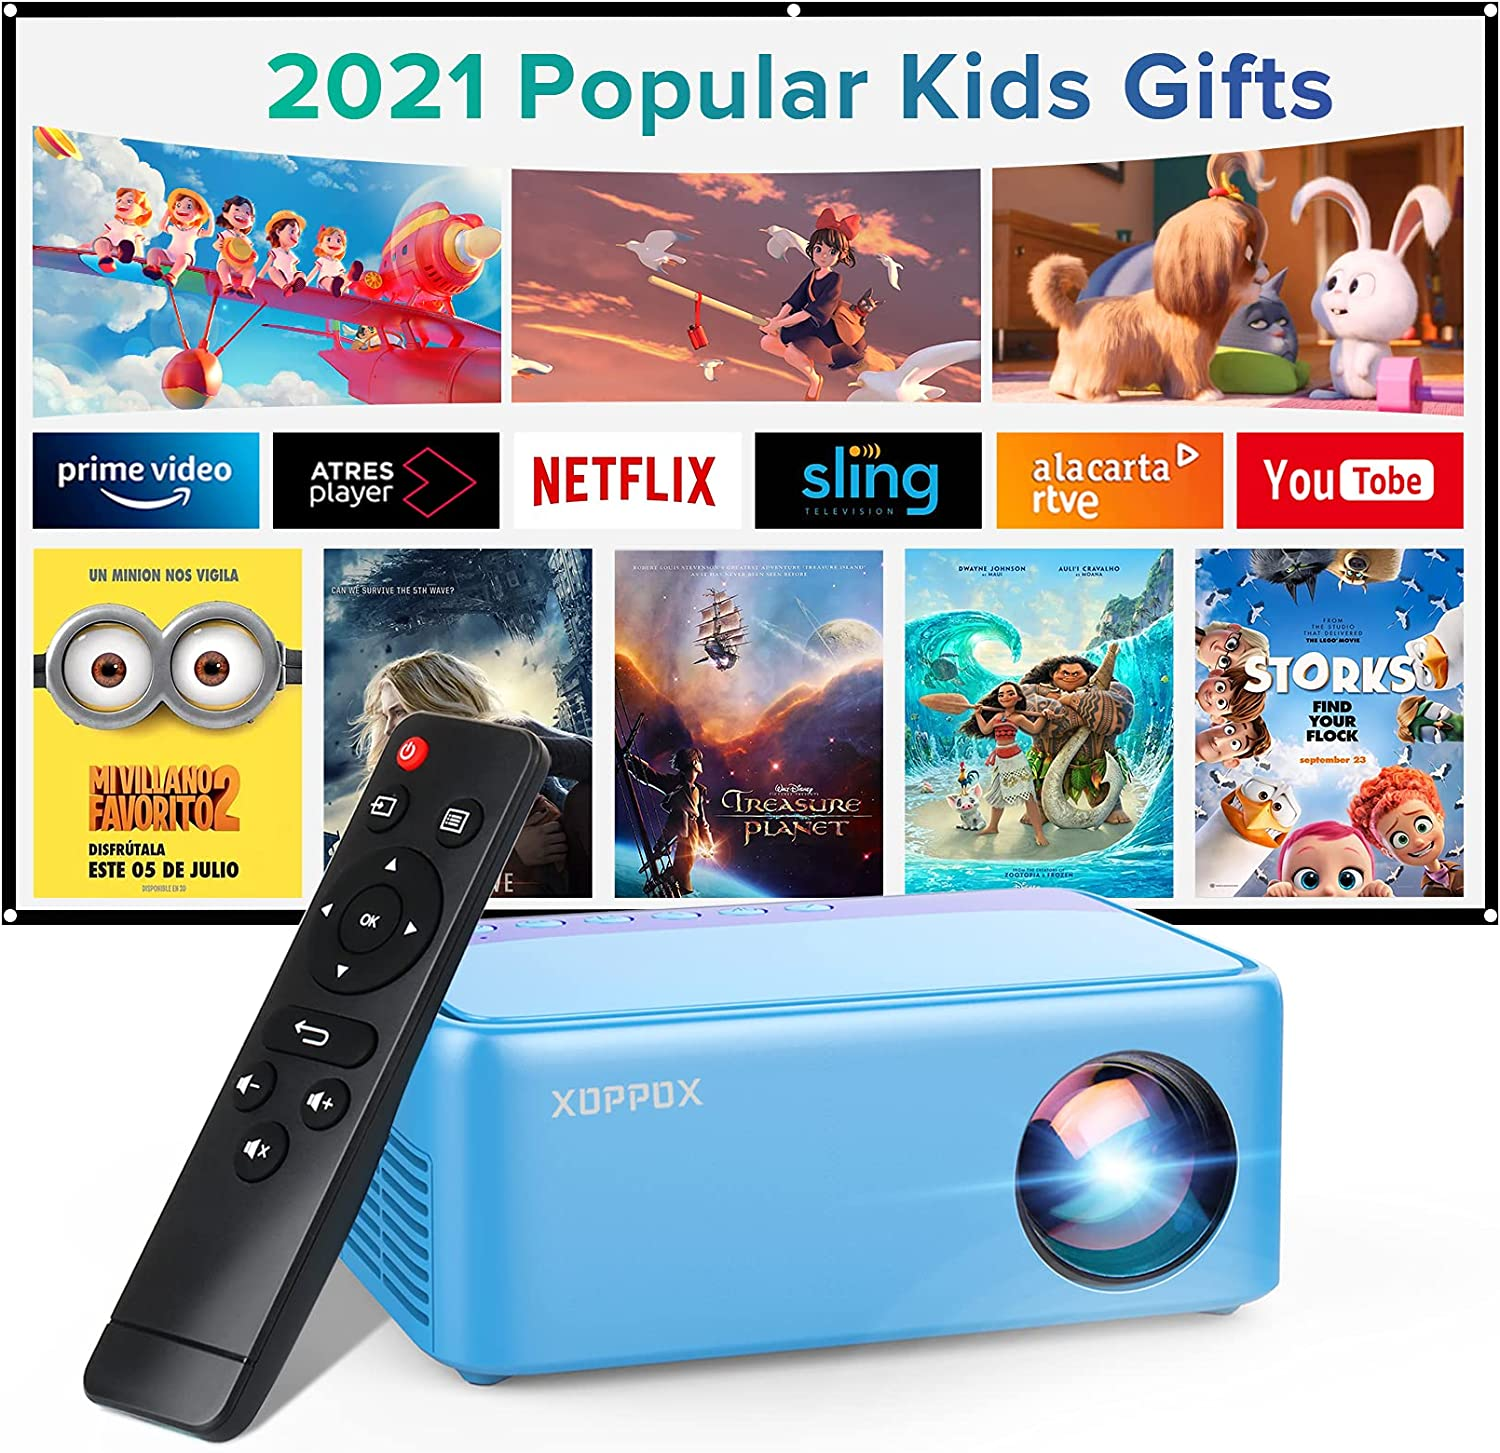 Mini Projector, Portable Projector, XOPPOX Video Projector for Cartoon, kids gifts, Outdoor Movie Projector, LED Pocket Pico Movie Projector for Home Phone Projector with HDMI/USB/Audio/AV Interfaces